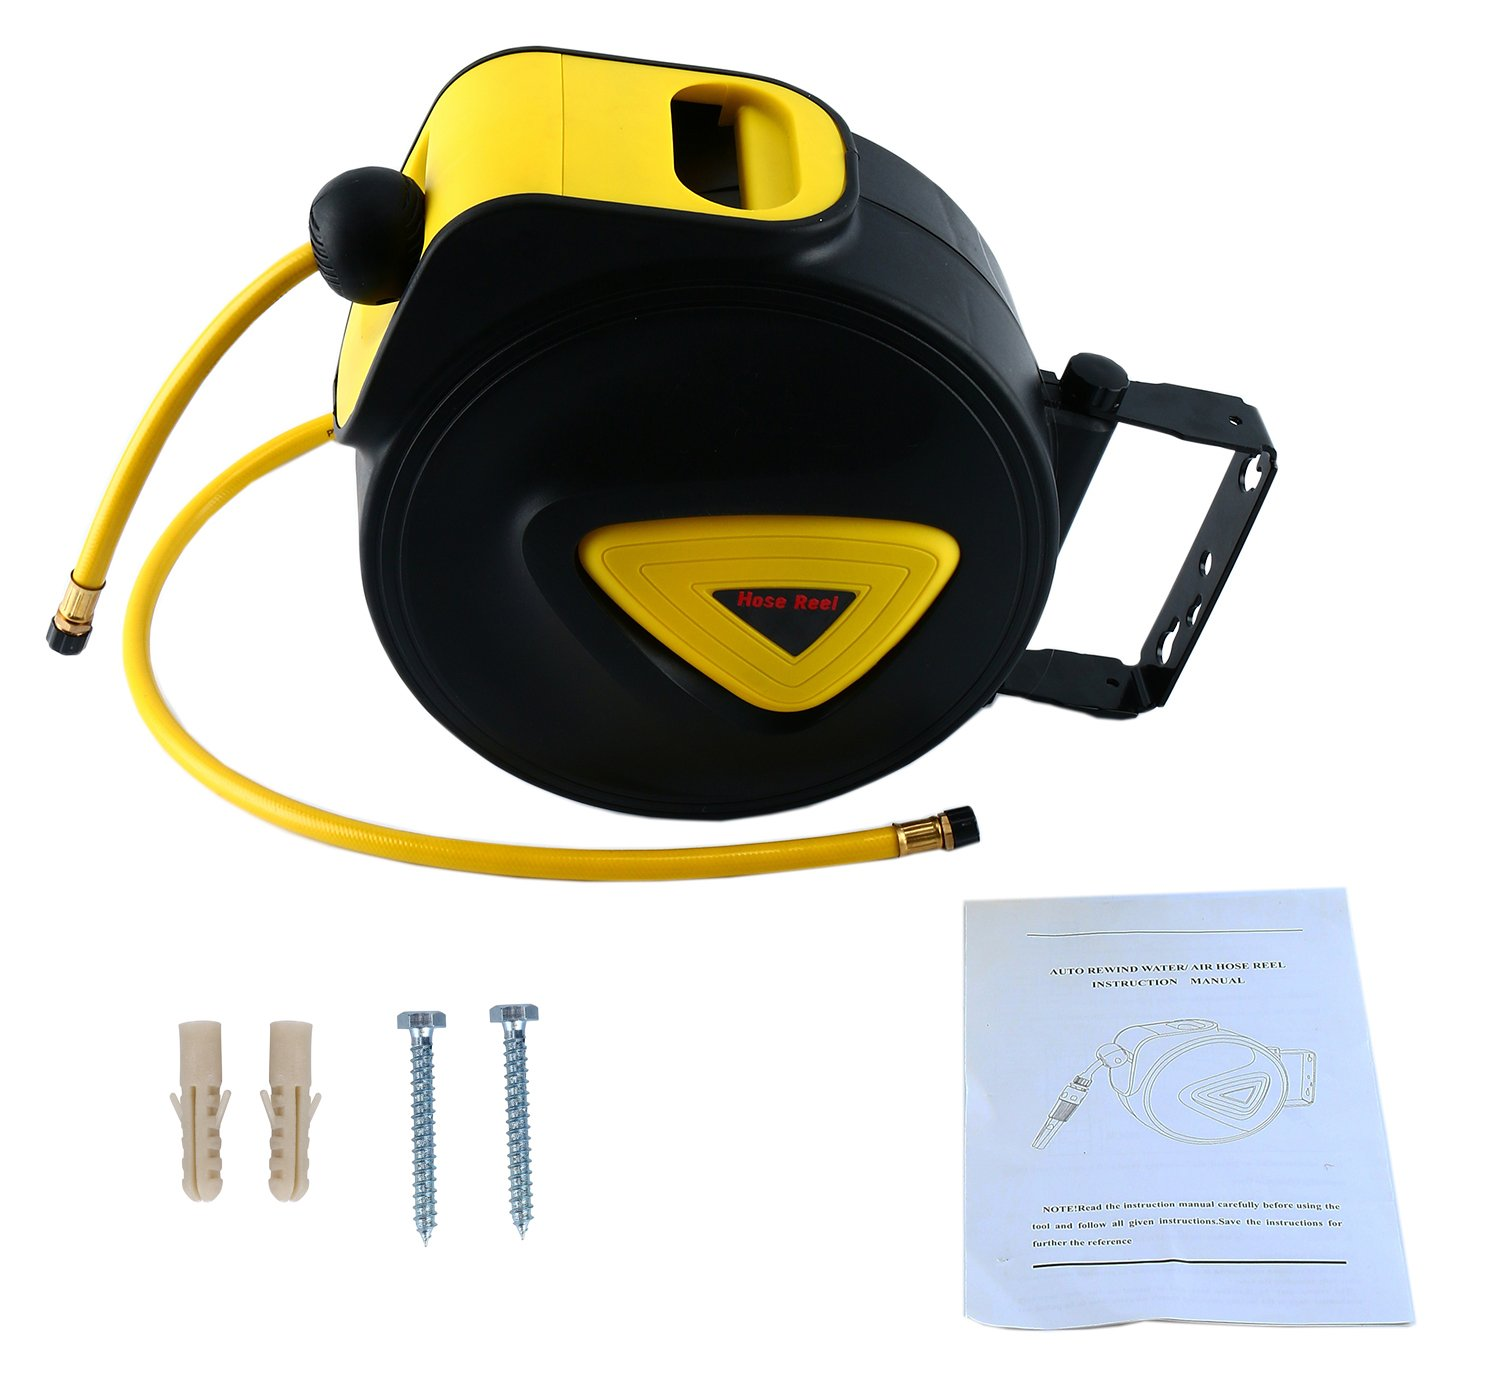 8MILELAKE Retractable Auto Rewind Air Hose Reel Wall Mount Tool Air Compressor 33'x5/16'' 180 degree rotation Air Hose Reel